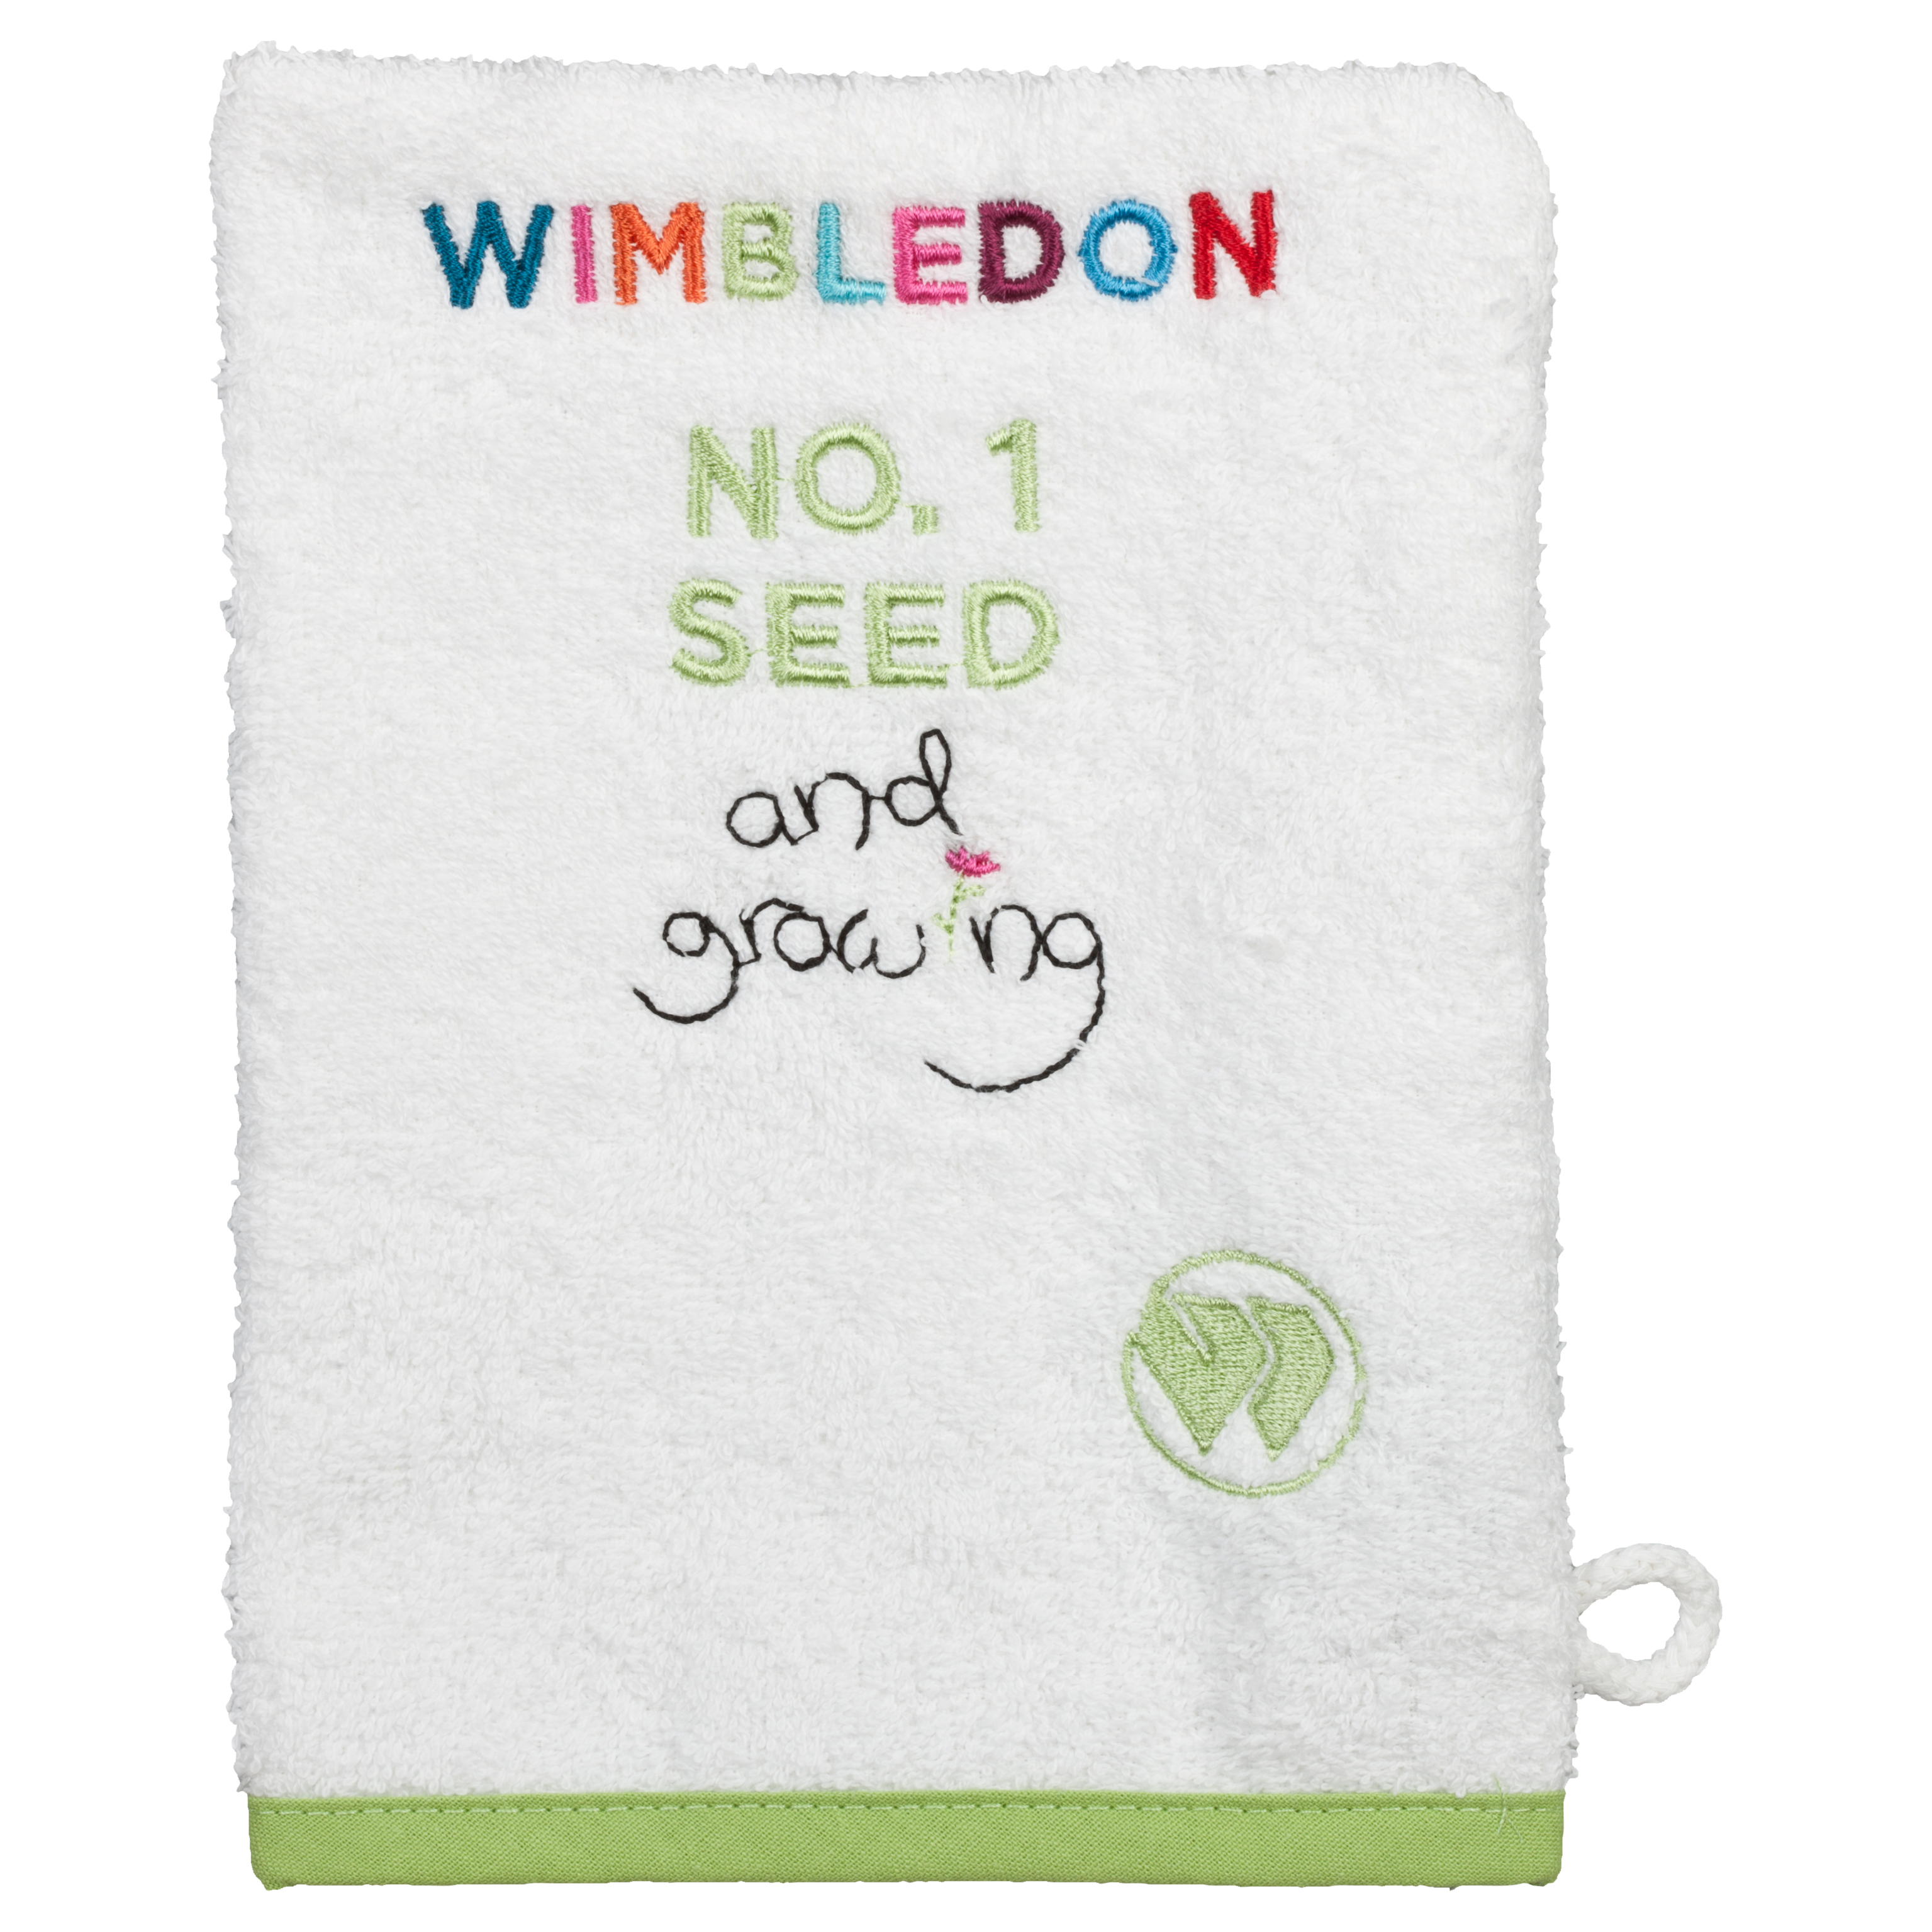 Wimbledon Kids 2013 Wash Mitt White